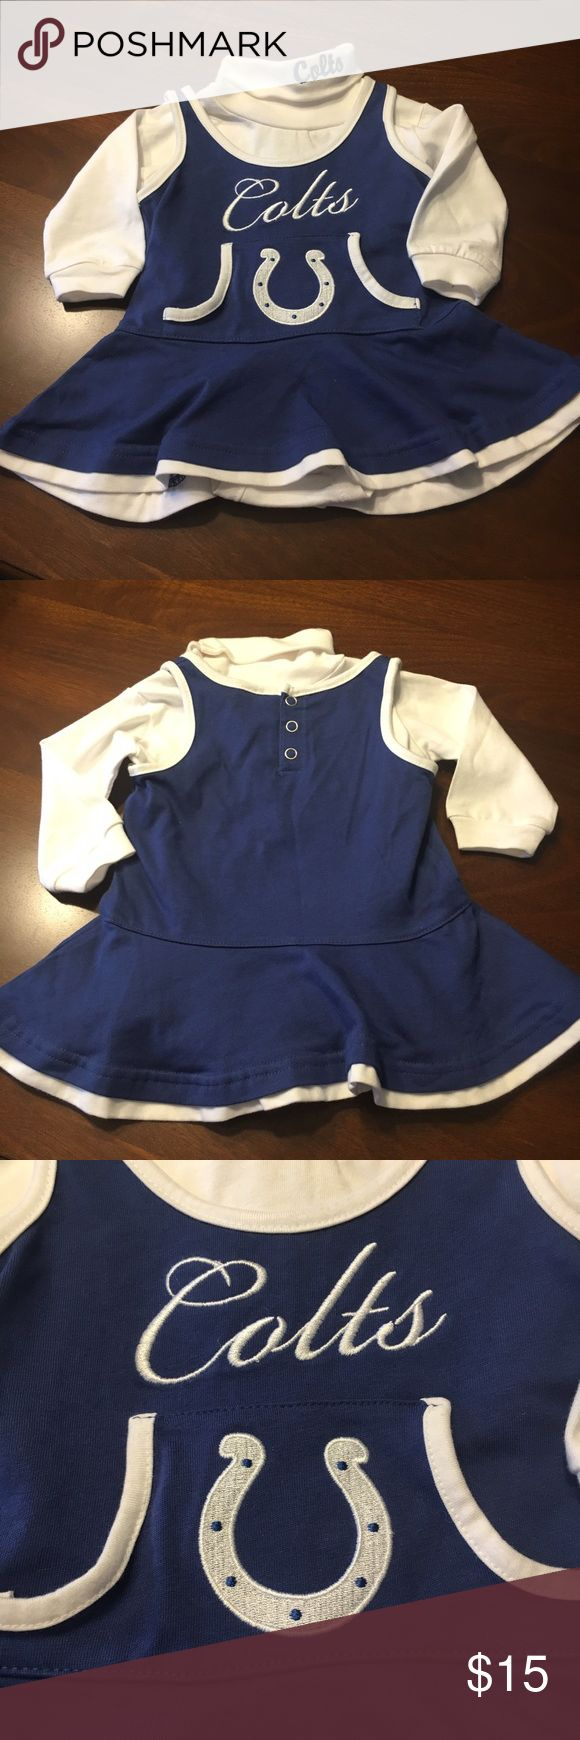 NWT Indianapolis Colts 2 Piece Baby Cheer Outfit NWT Indianapolis Colts 2 Piece Baby Cheerleading Outfit 3-6 Months NFL Matching Sets